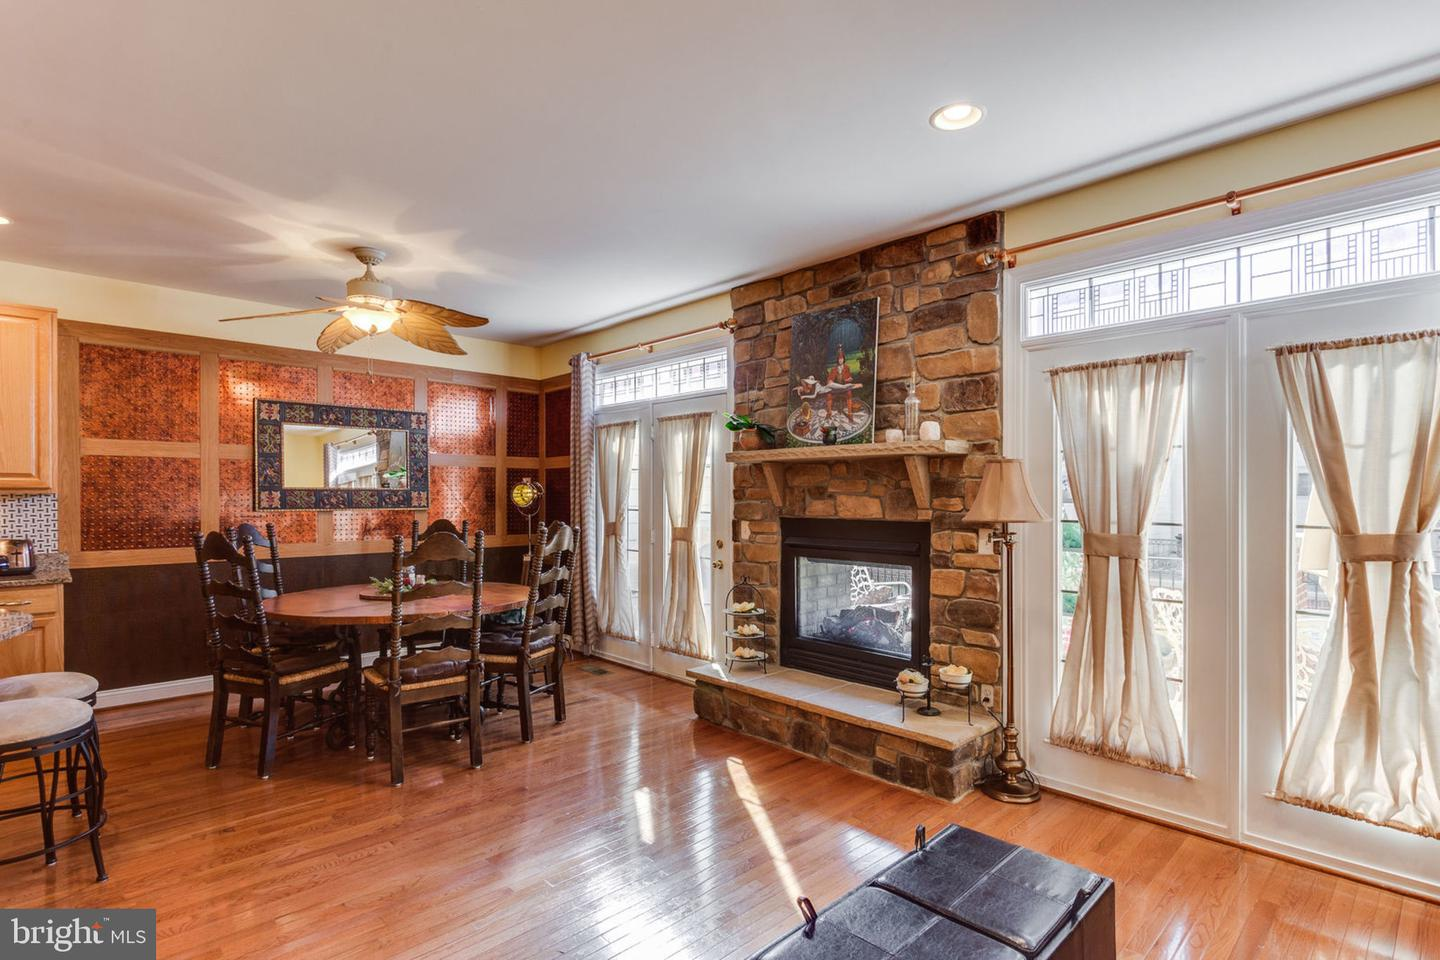 Additional photo for property listing at 493 Belmont Bay Dr Woodbridge, Virginia 22191 United States